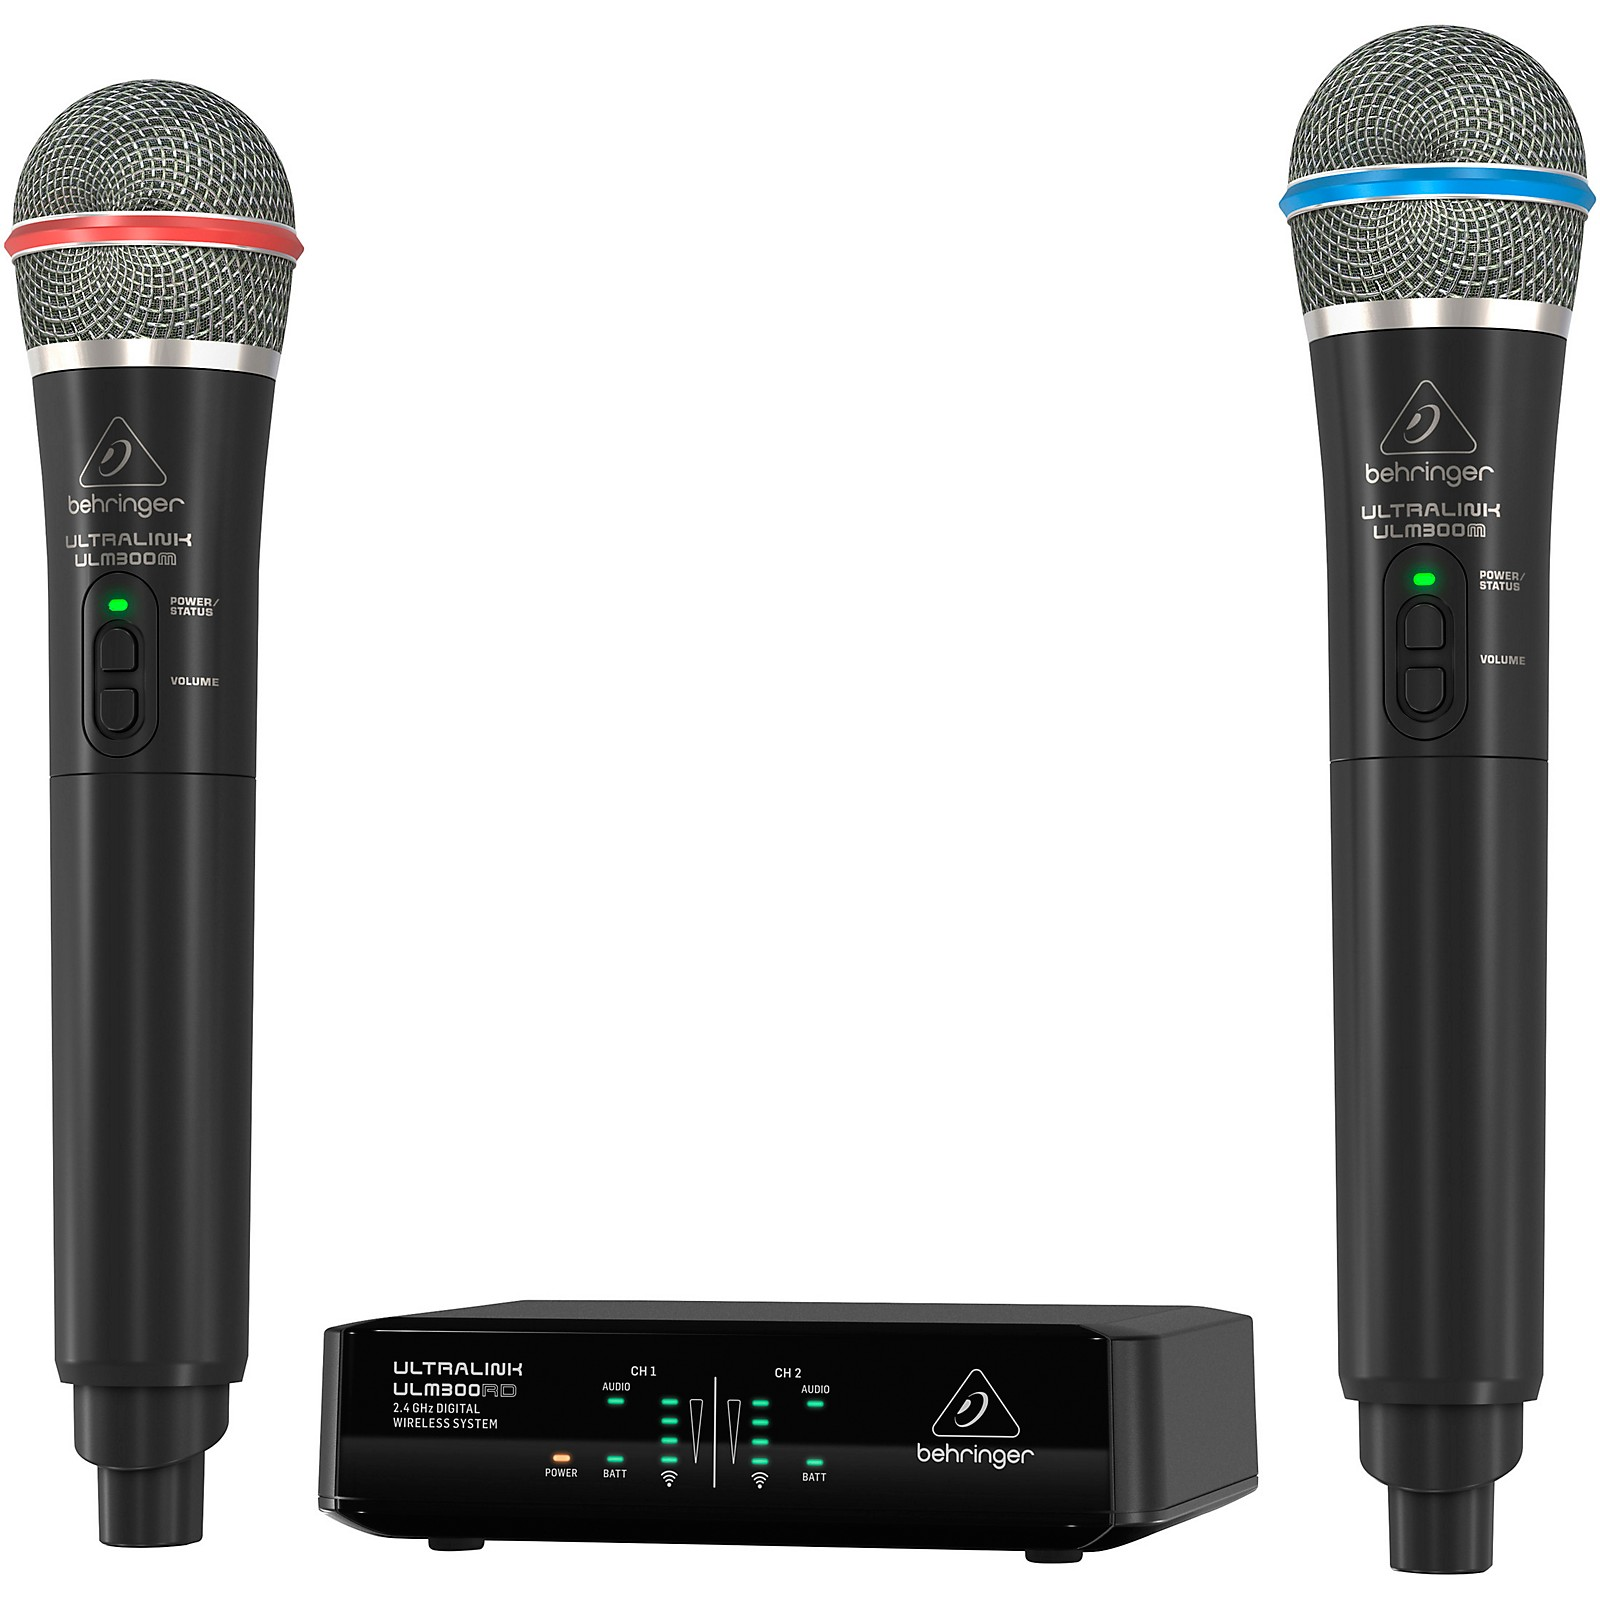 Behringer ULM302MIC High-Performance 2.4 GHz Digital Wireless System with 2 Handheld Microphones